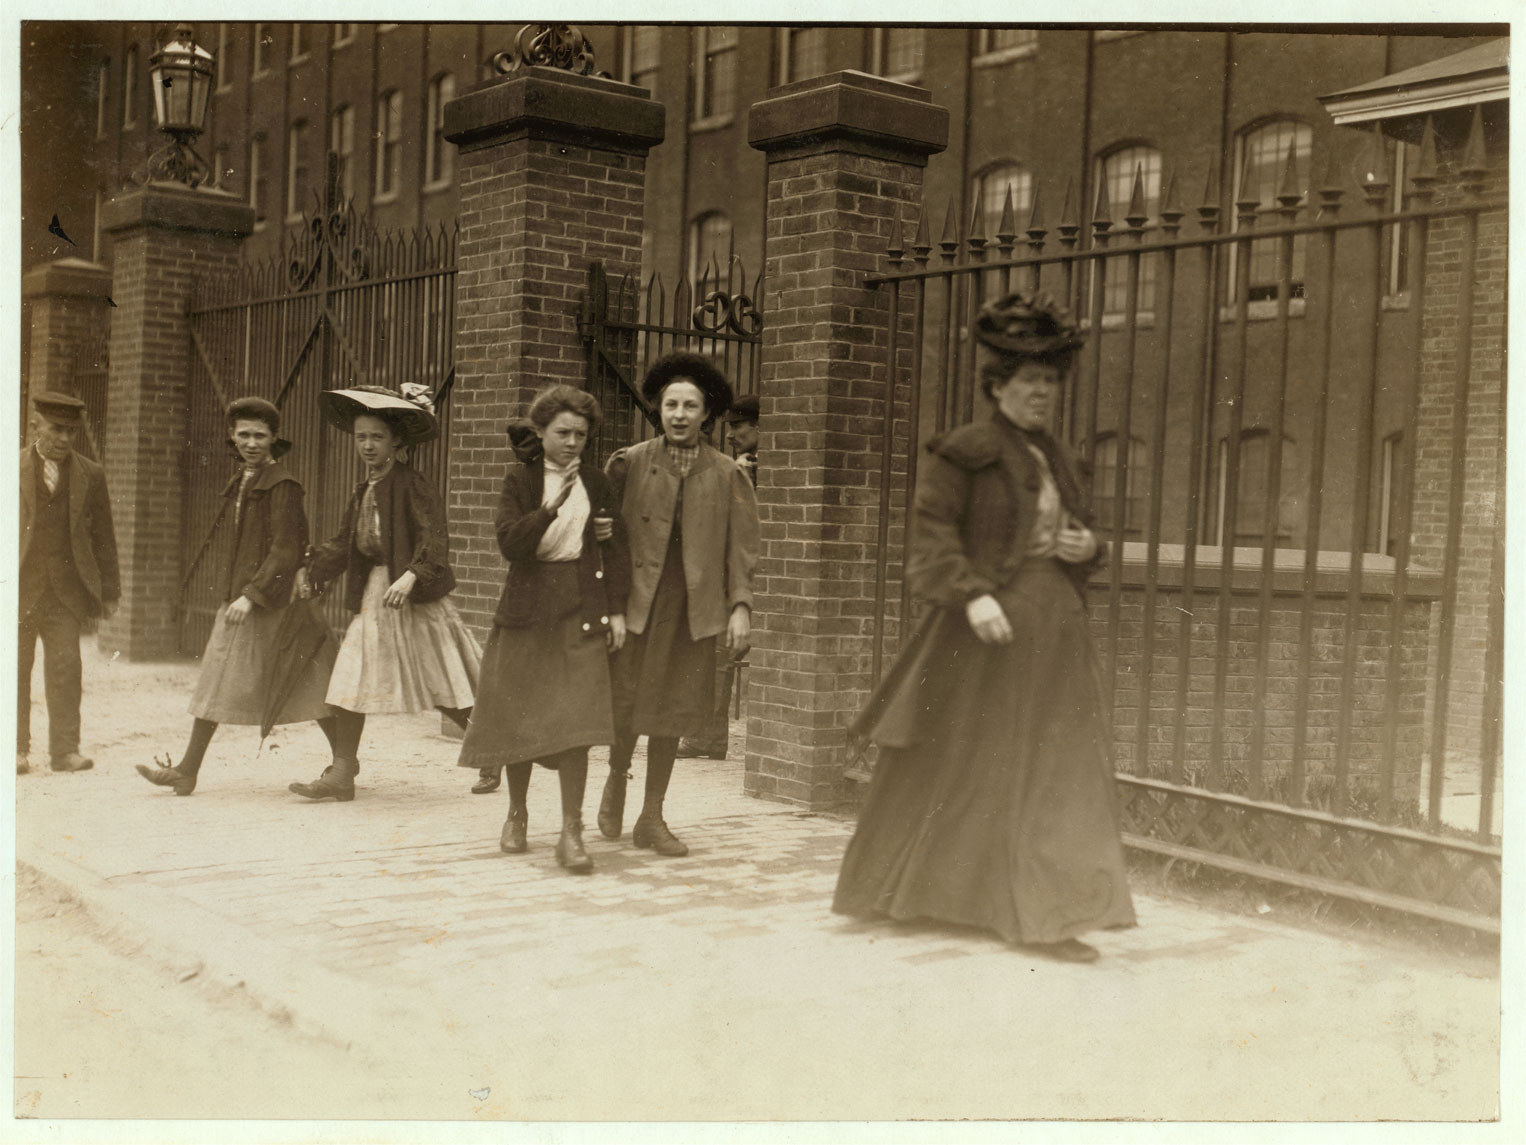 In a black and white photograph, the outside of a brick building is shown. Wrought-iron gates with tall brick columns fence the building. People are exiting through the gate out to the dusty sidewalk. One women wears long dark skirts, a formal jacket, and a decorative hat. Behind her, four girls just leaving the gate wear shin length skirts, jackets, and hats or bows in their hair. One man wears a dark suit and a casual hat and is watching them all leave.